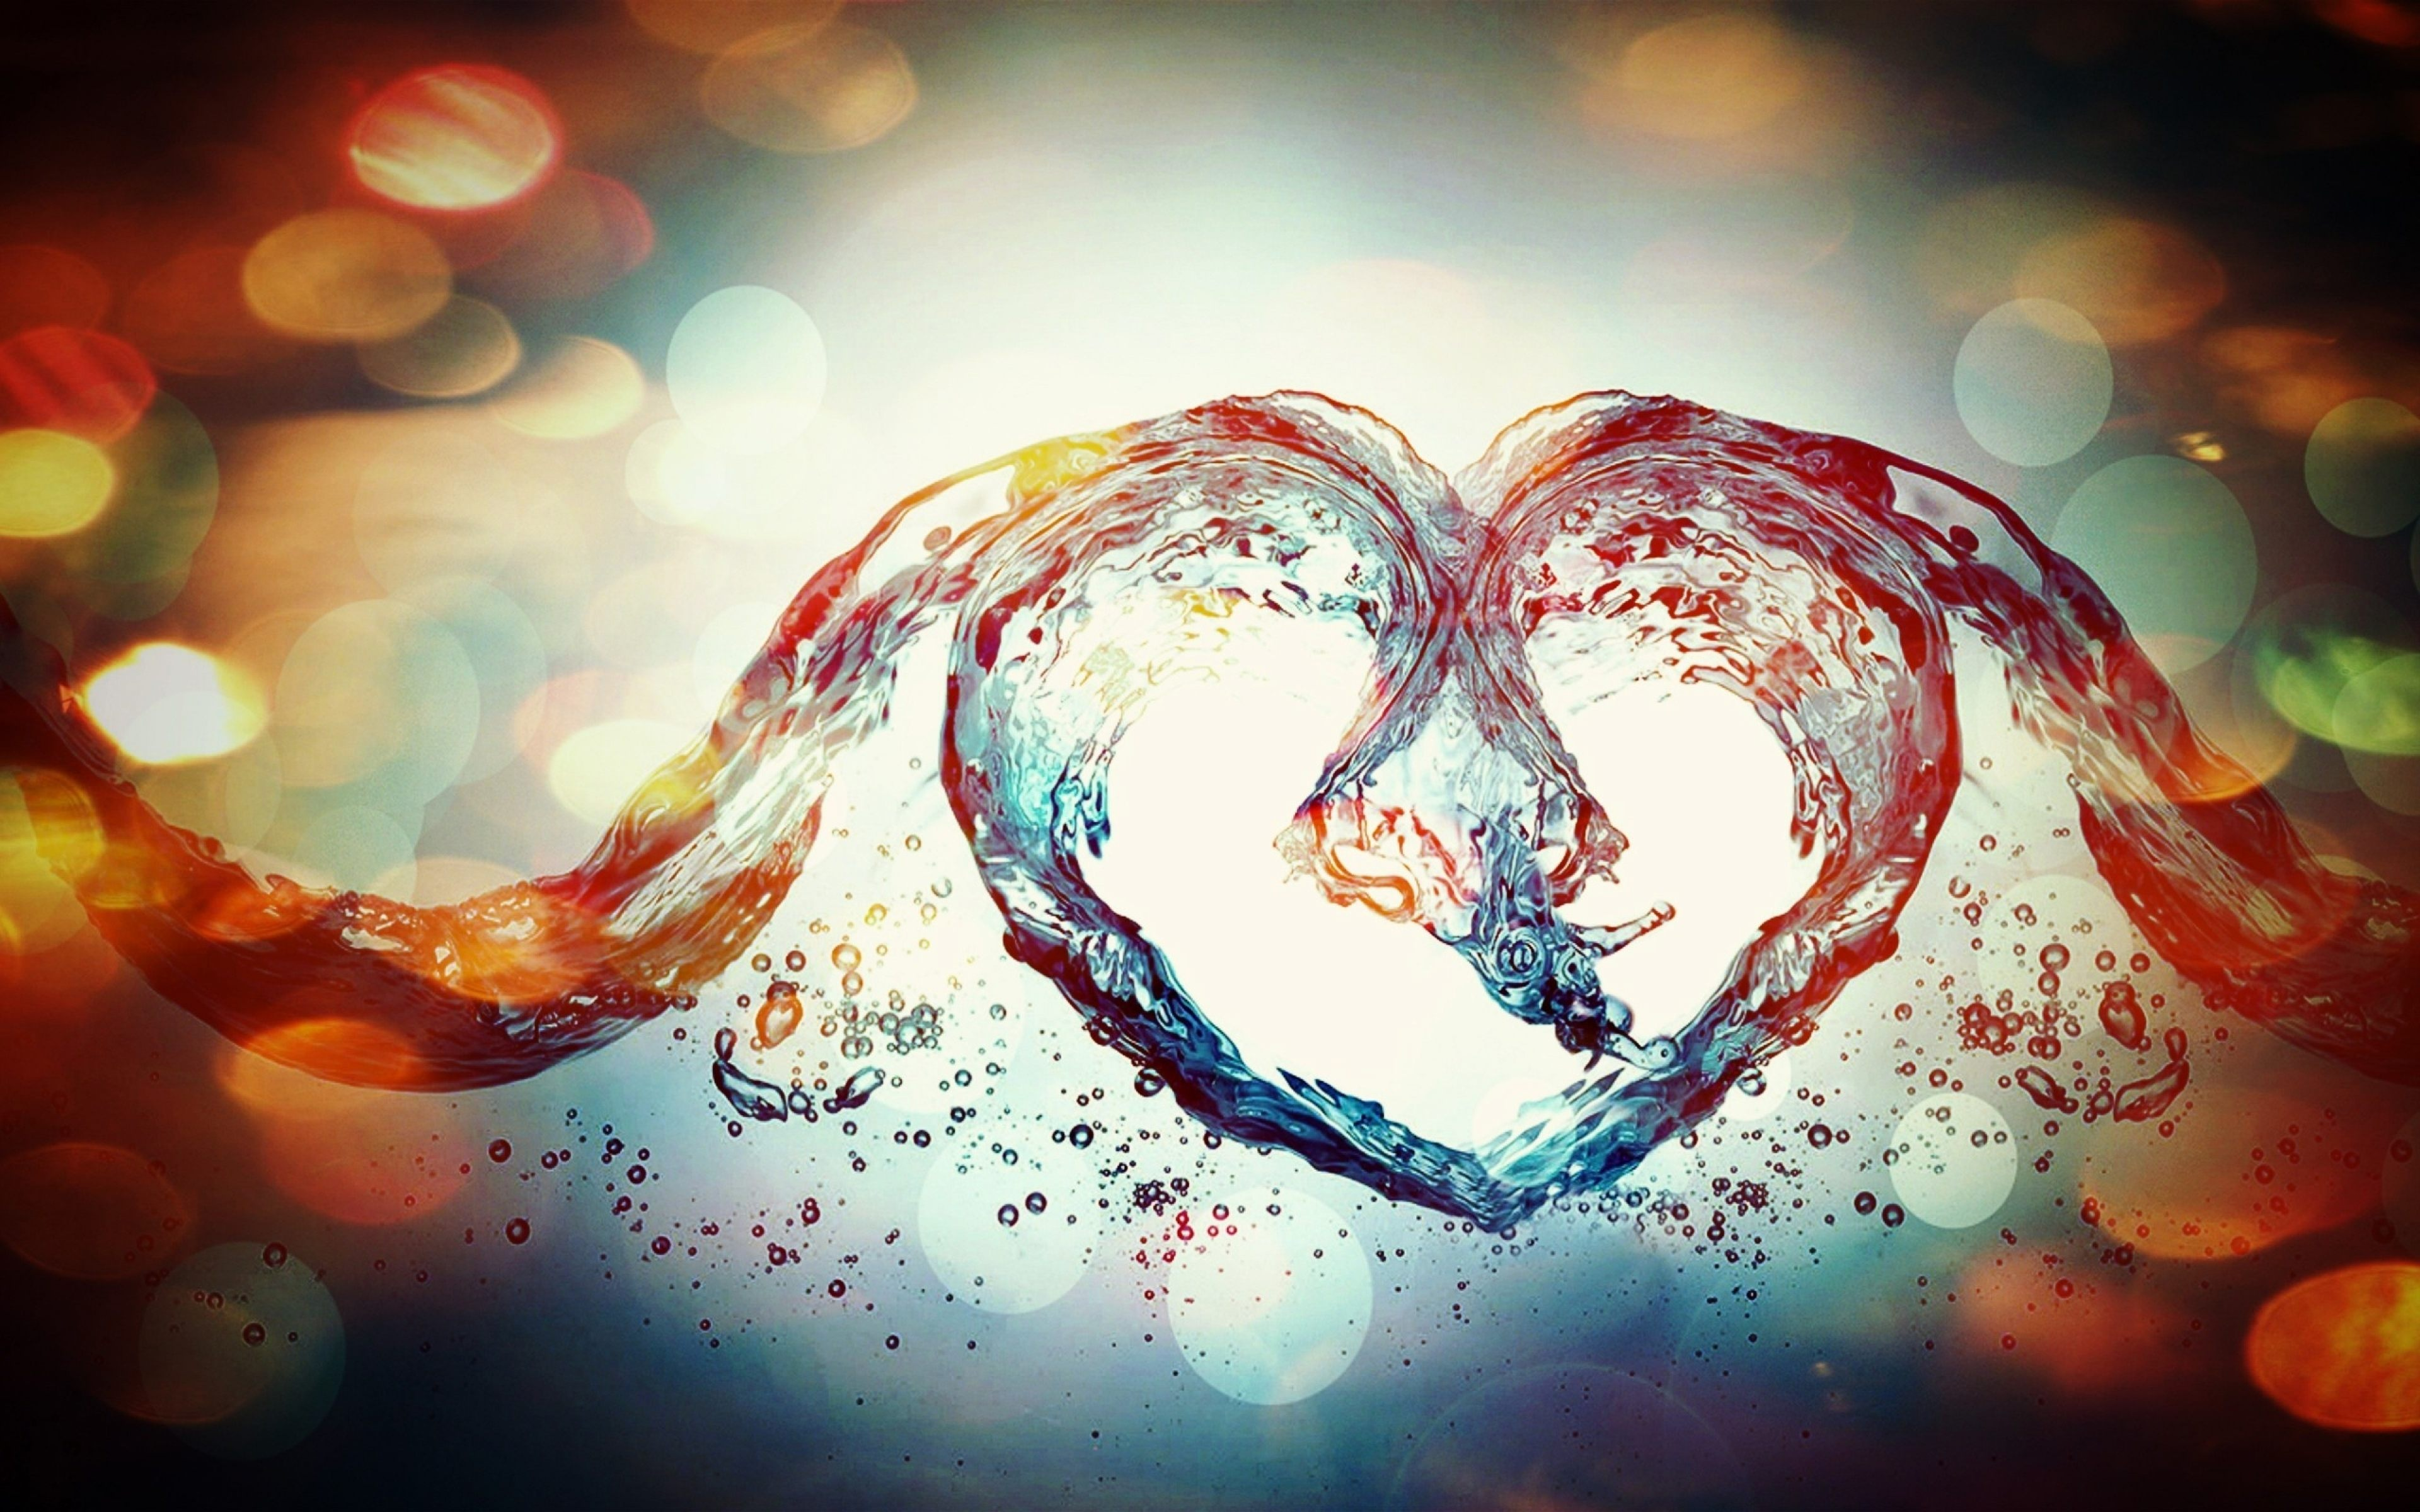 4k Love Wallpapers Valentines Day Facebook Background 77254